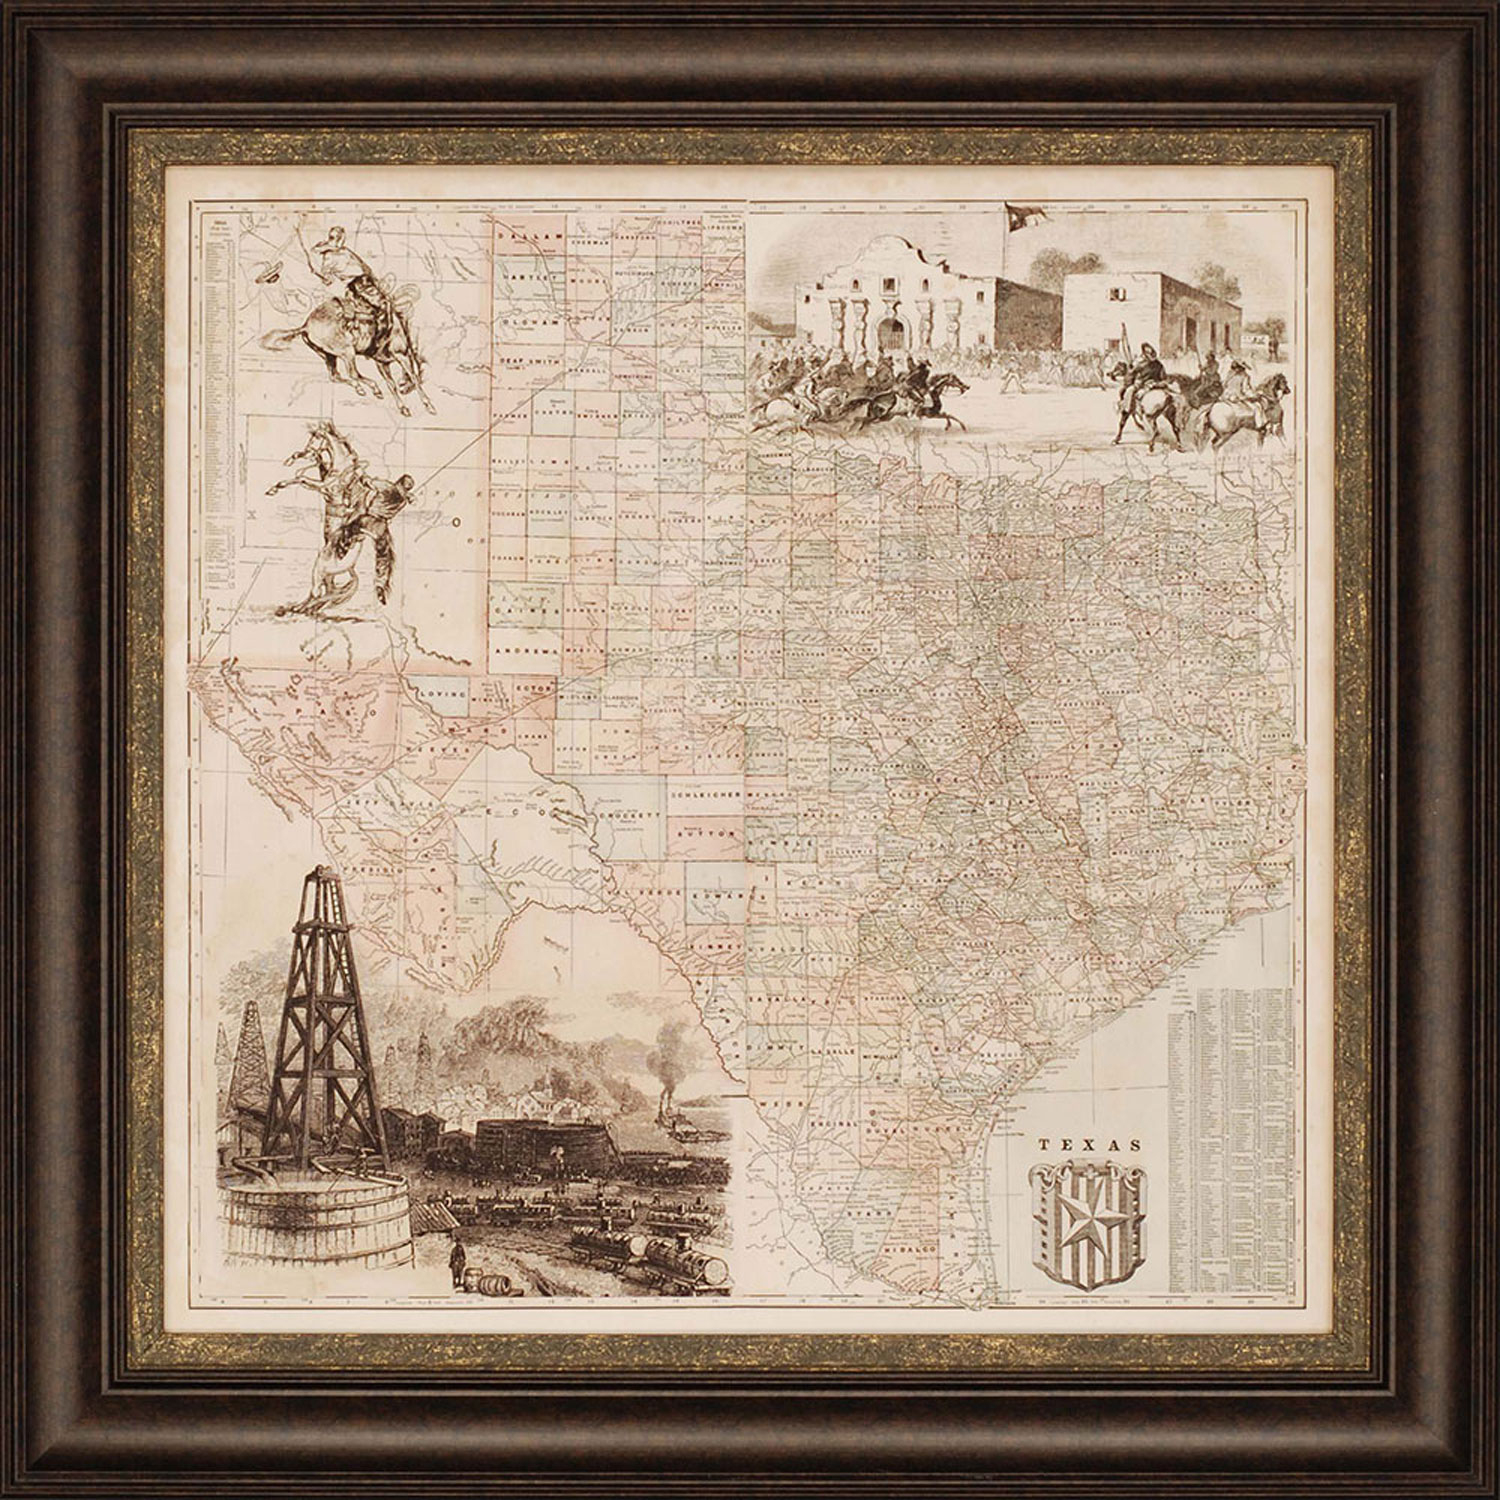 Paragon Texas Mapvision Studio: 38 X 38 Inch Framed Art 1755 - Texas Map Framed Art